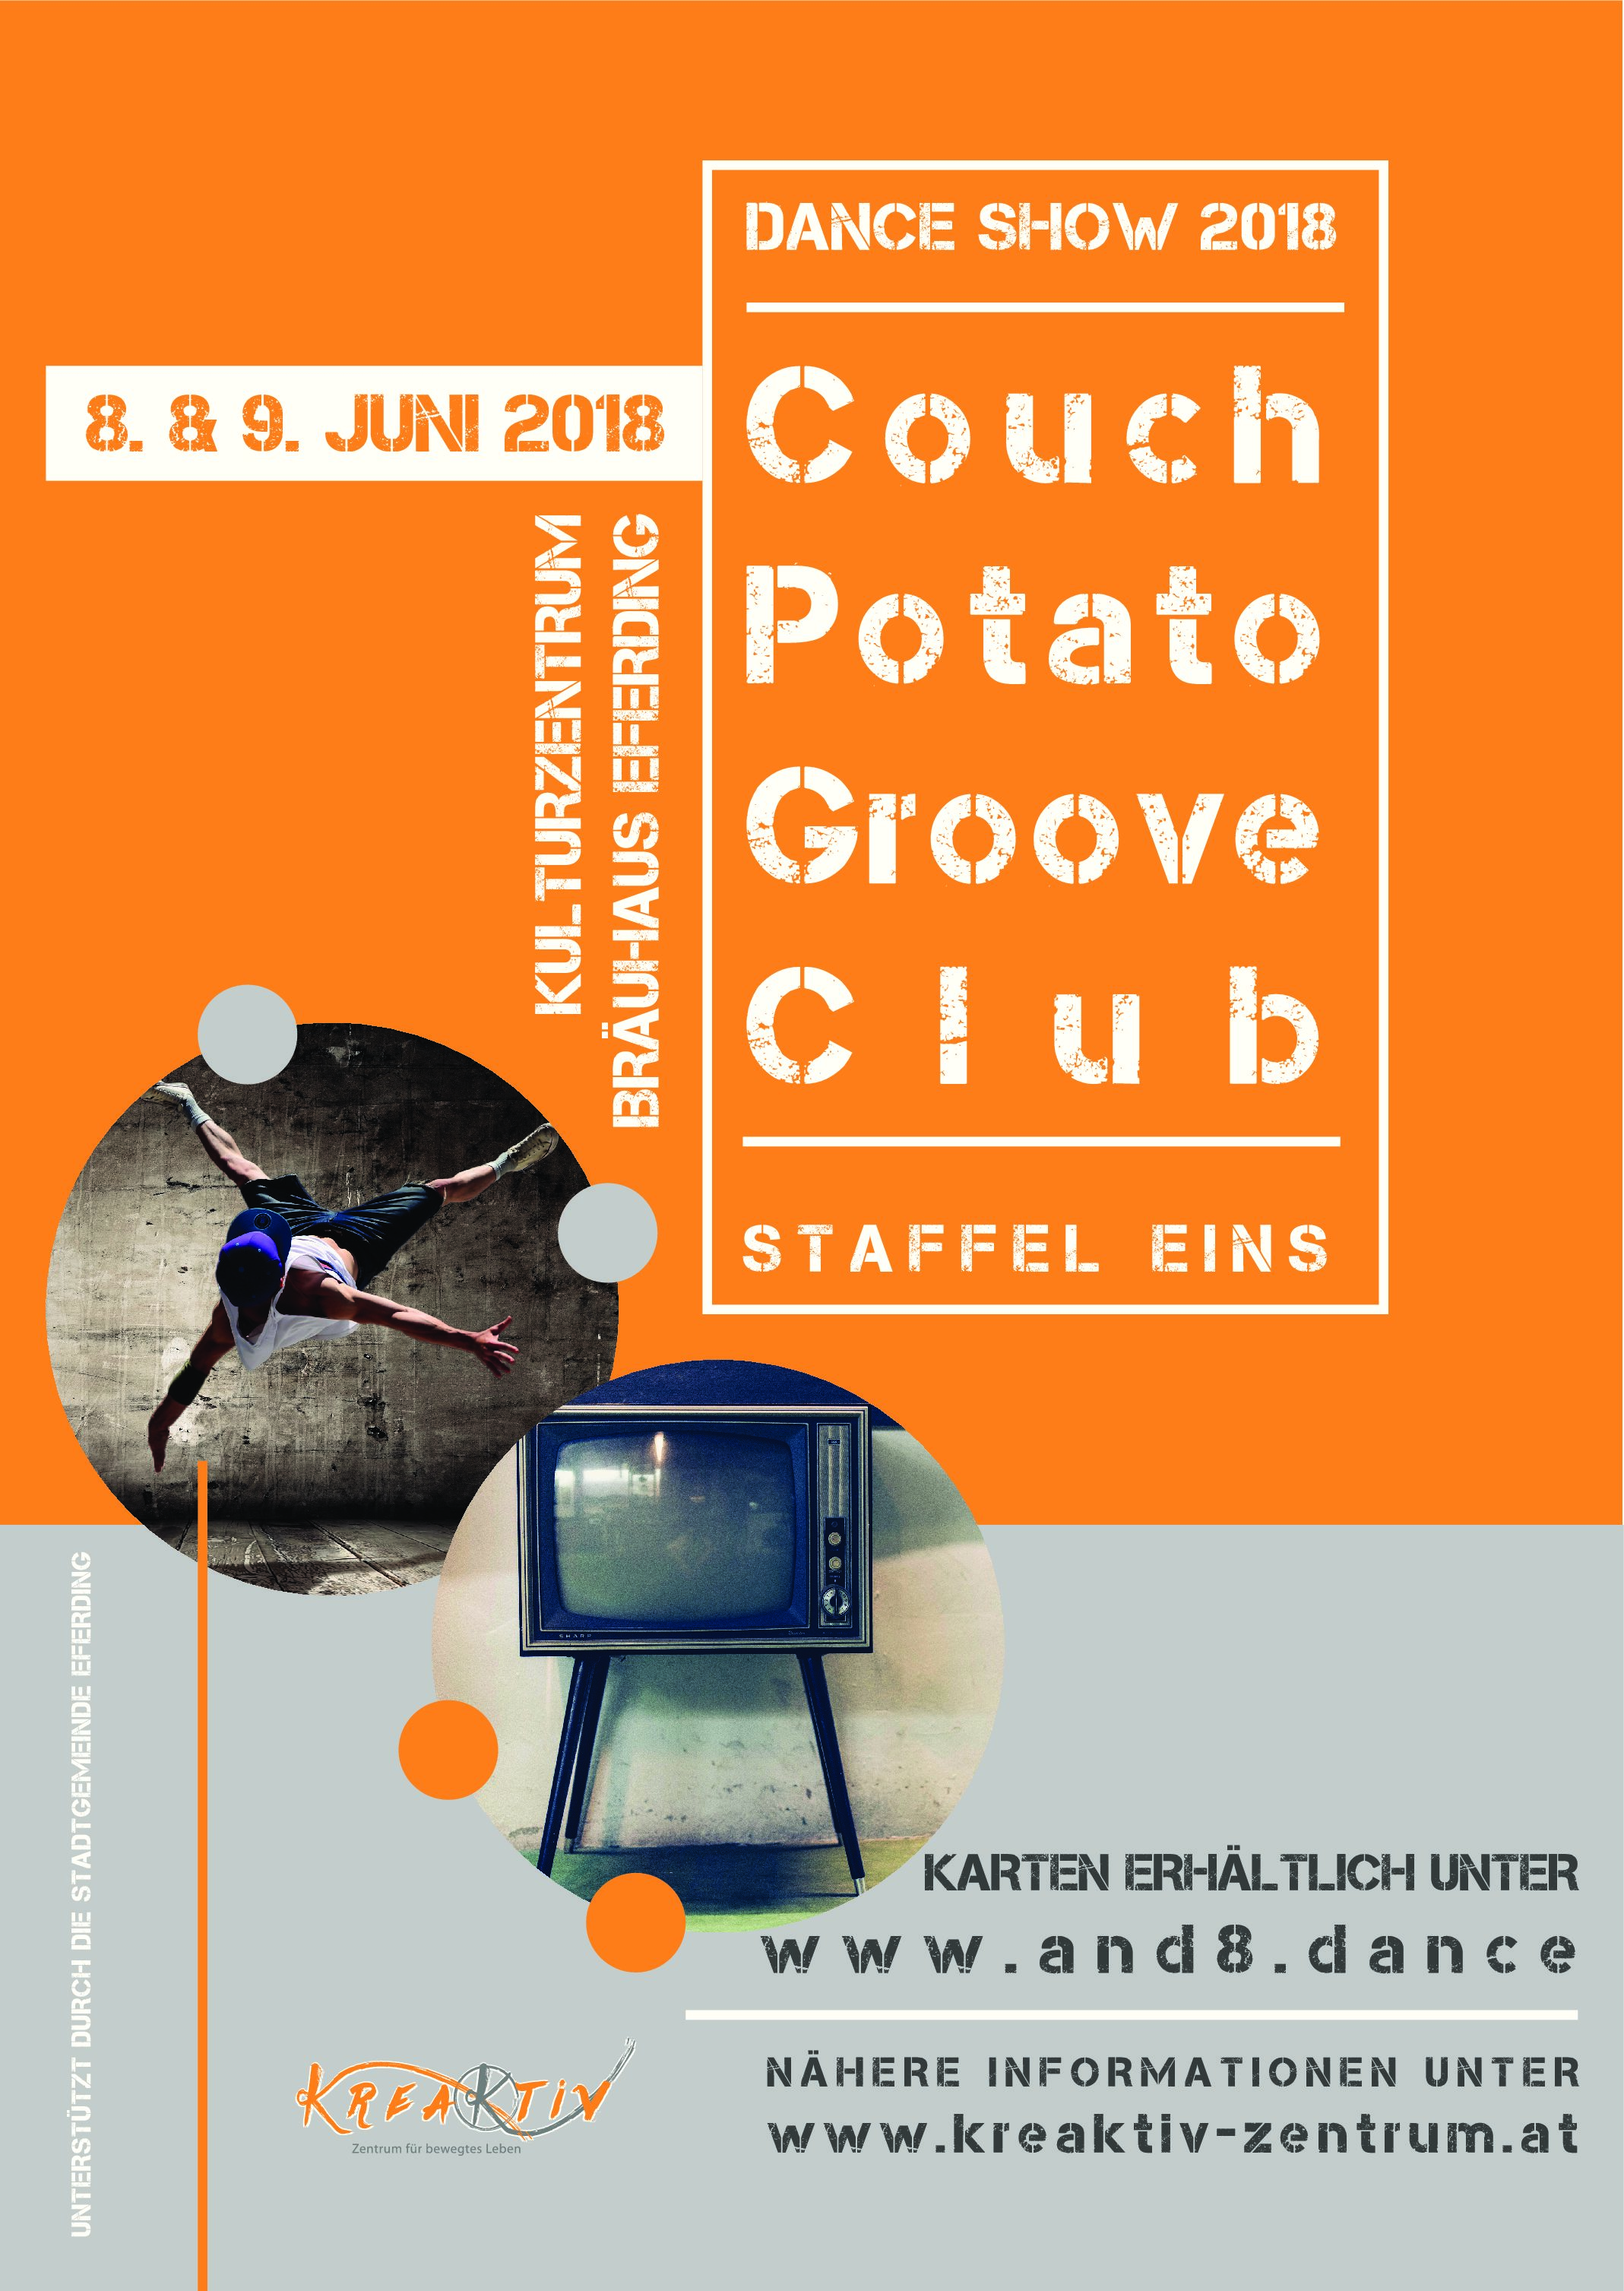 Couch Potato Groove Club  – Die Dance Show 2018